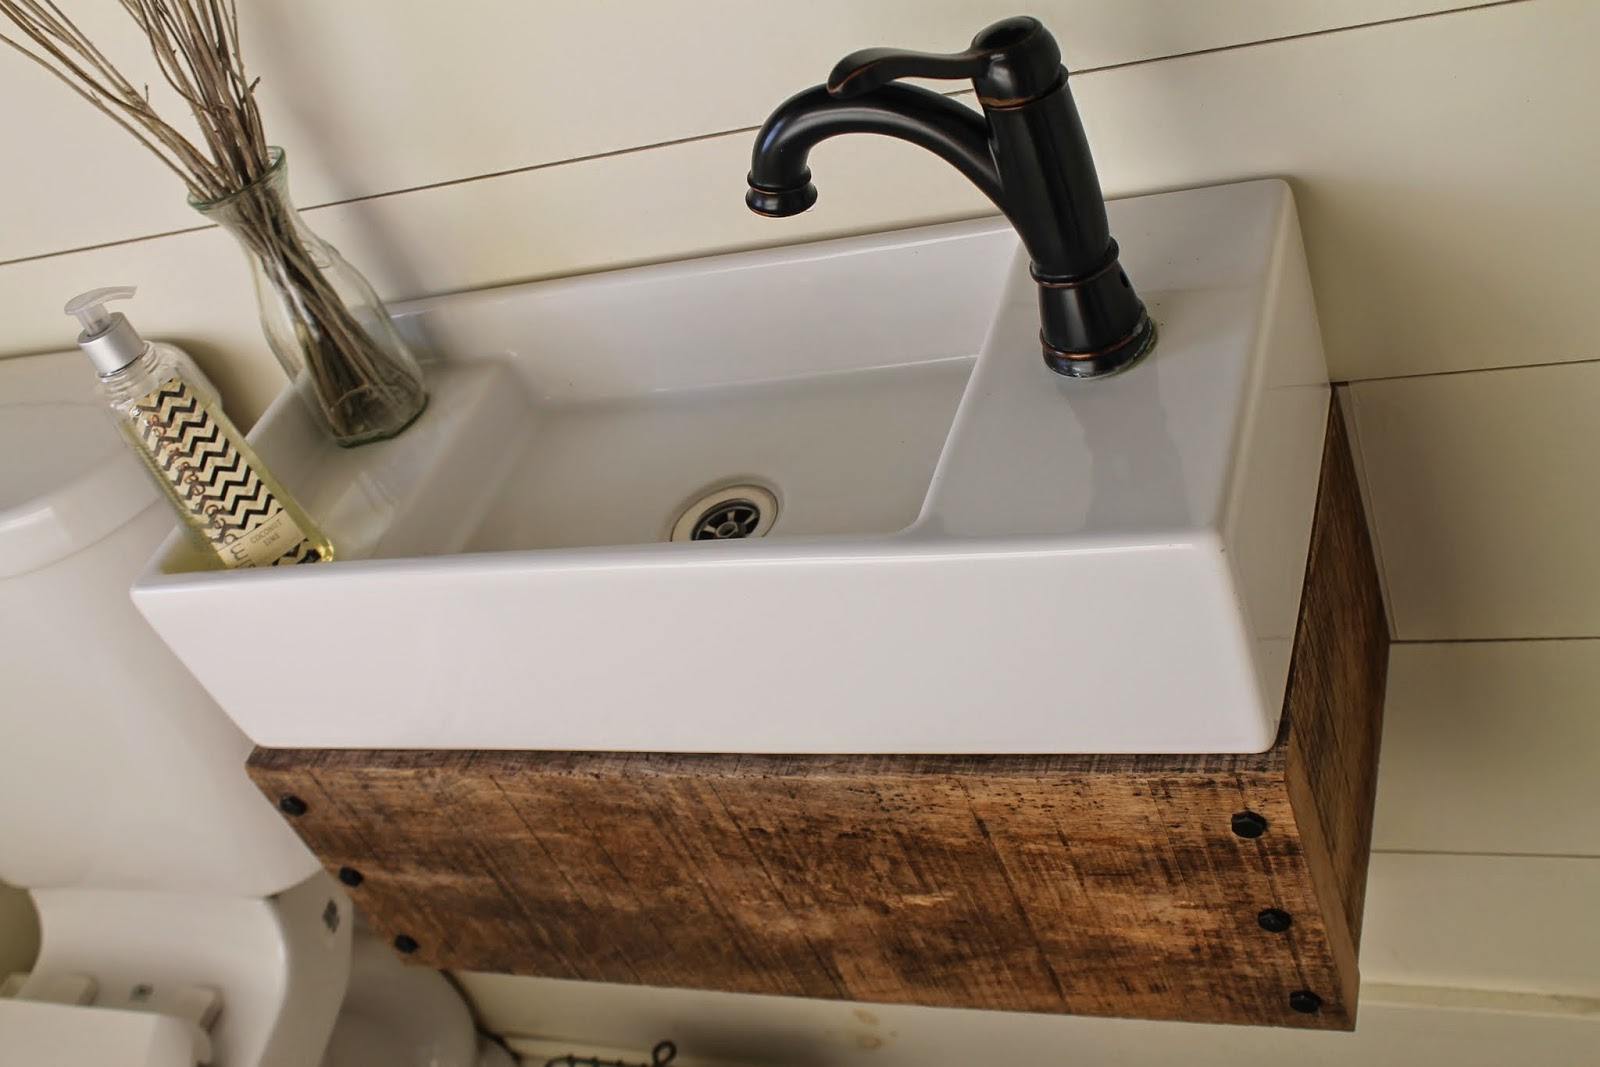 Inspirational build a wood floating vanity to fit an IKEA sink Girl Meets Carpenter featured on